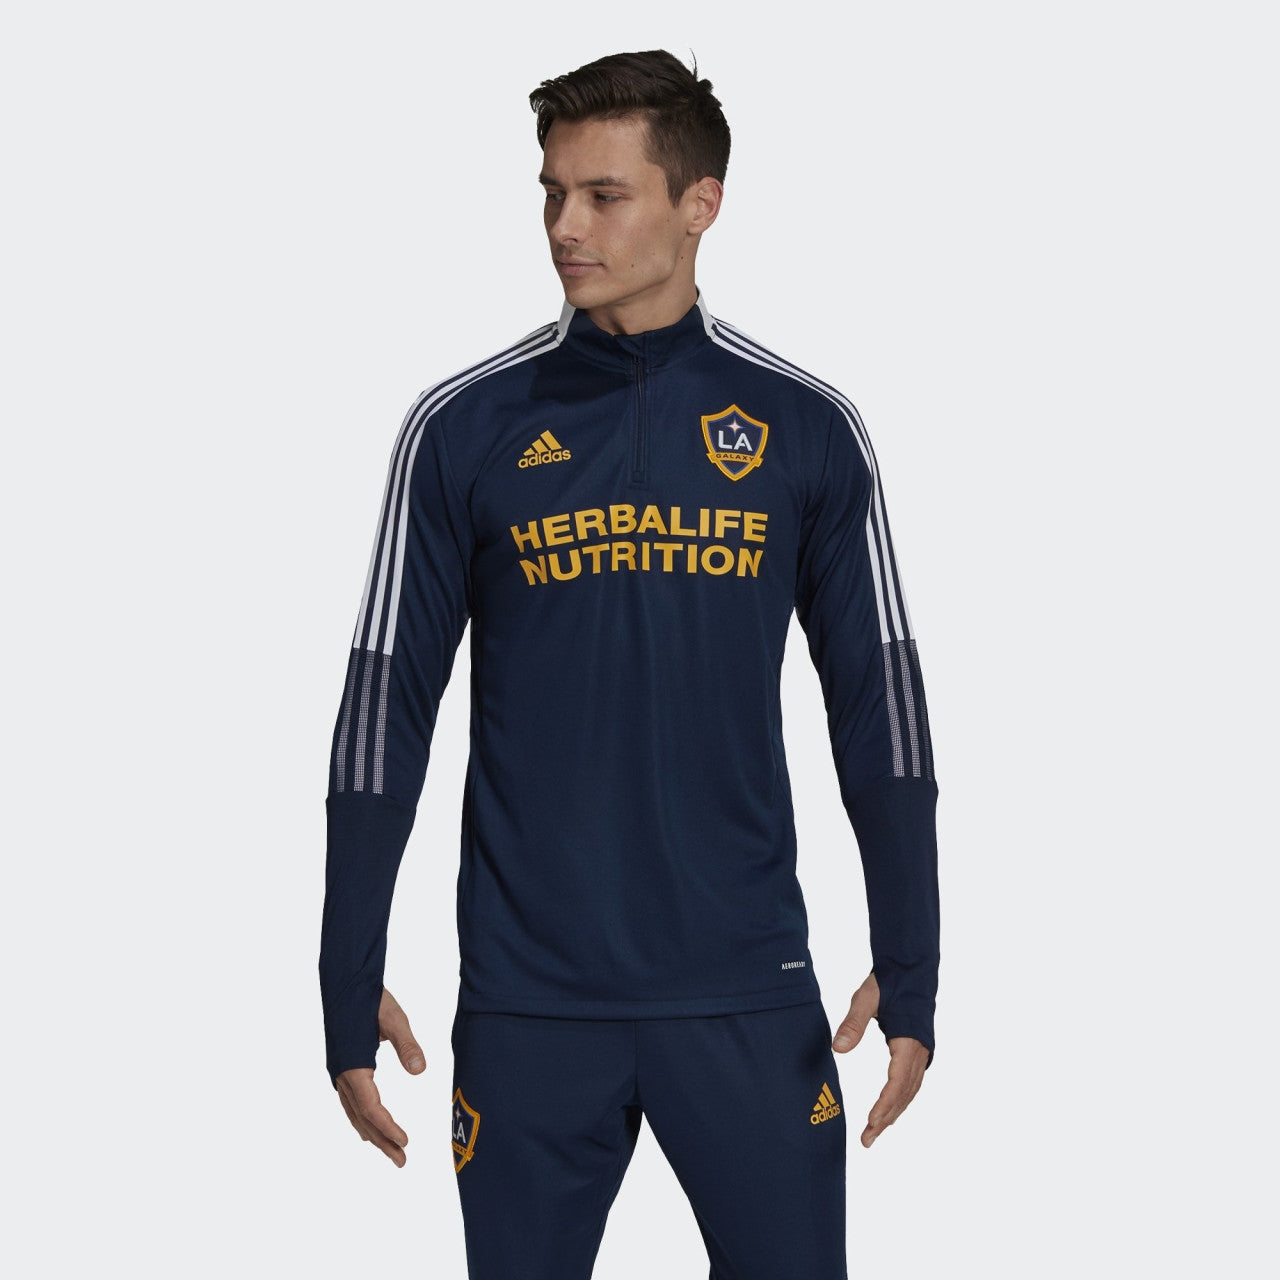 LA Galaxy Training Top 21/22